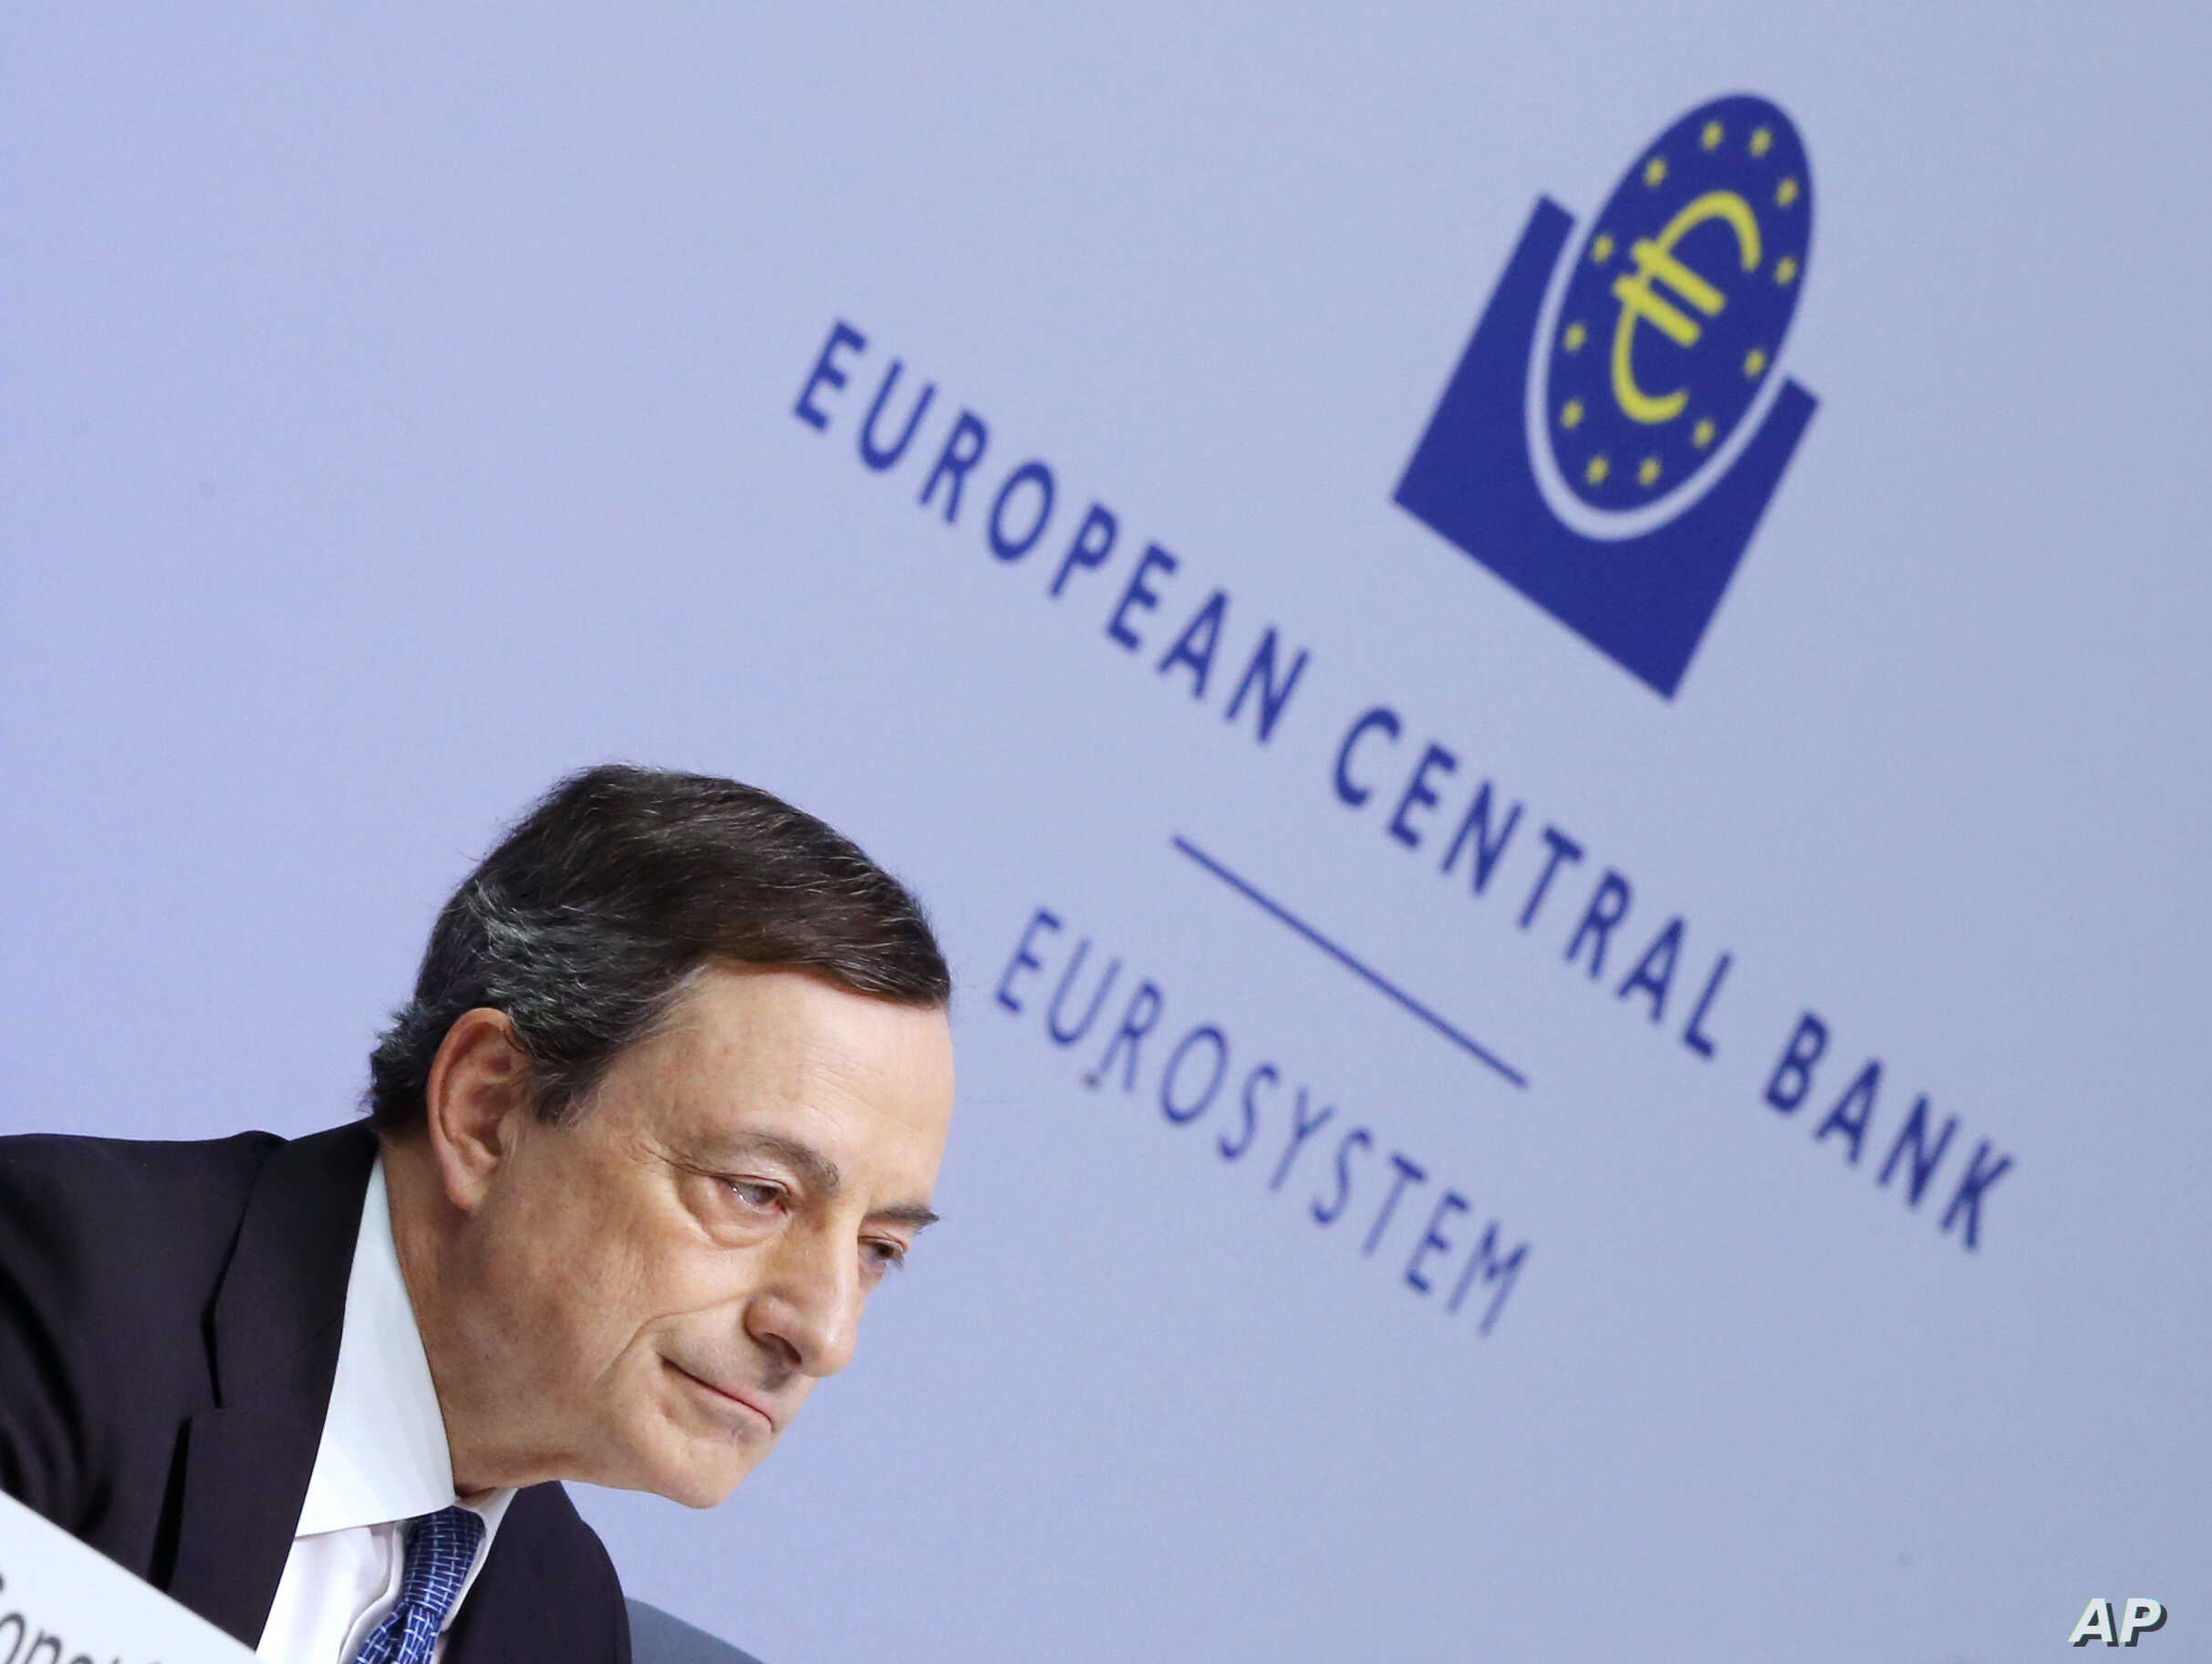 President of European Central Bank Mario Draghi  speaks during a  press conference following a meeting of the governing council in Frankfurt, Germany, March 10, 2016.